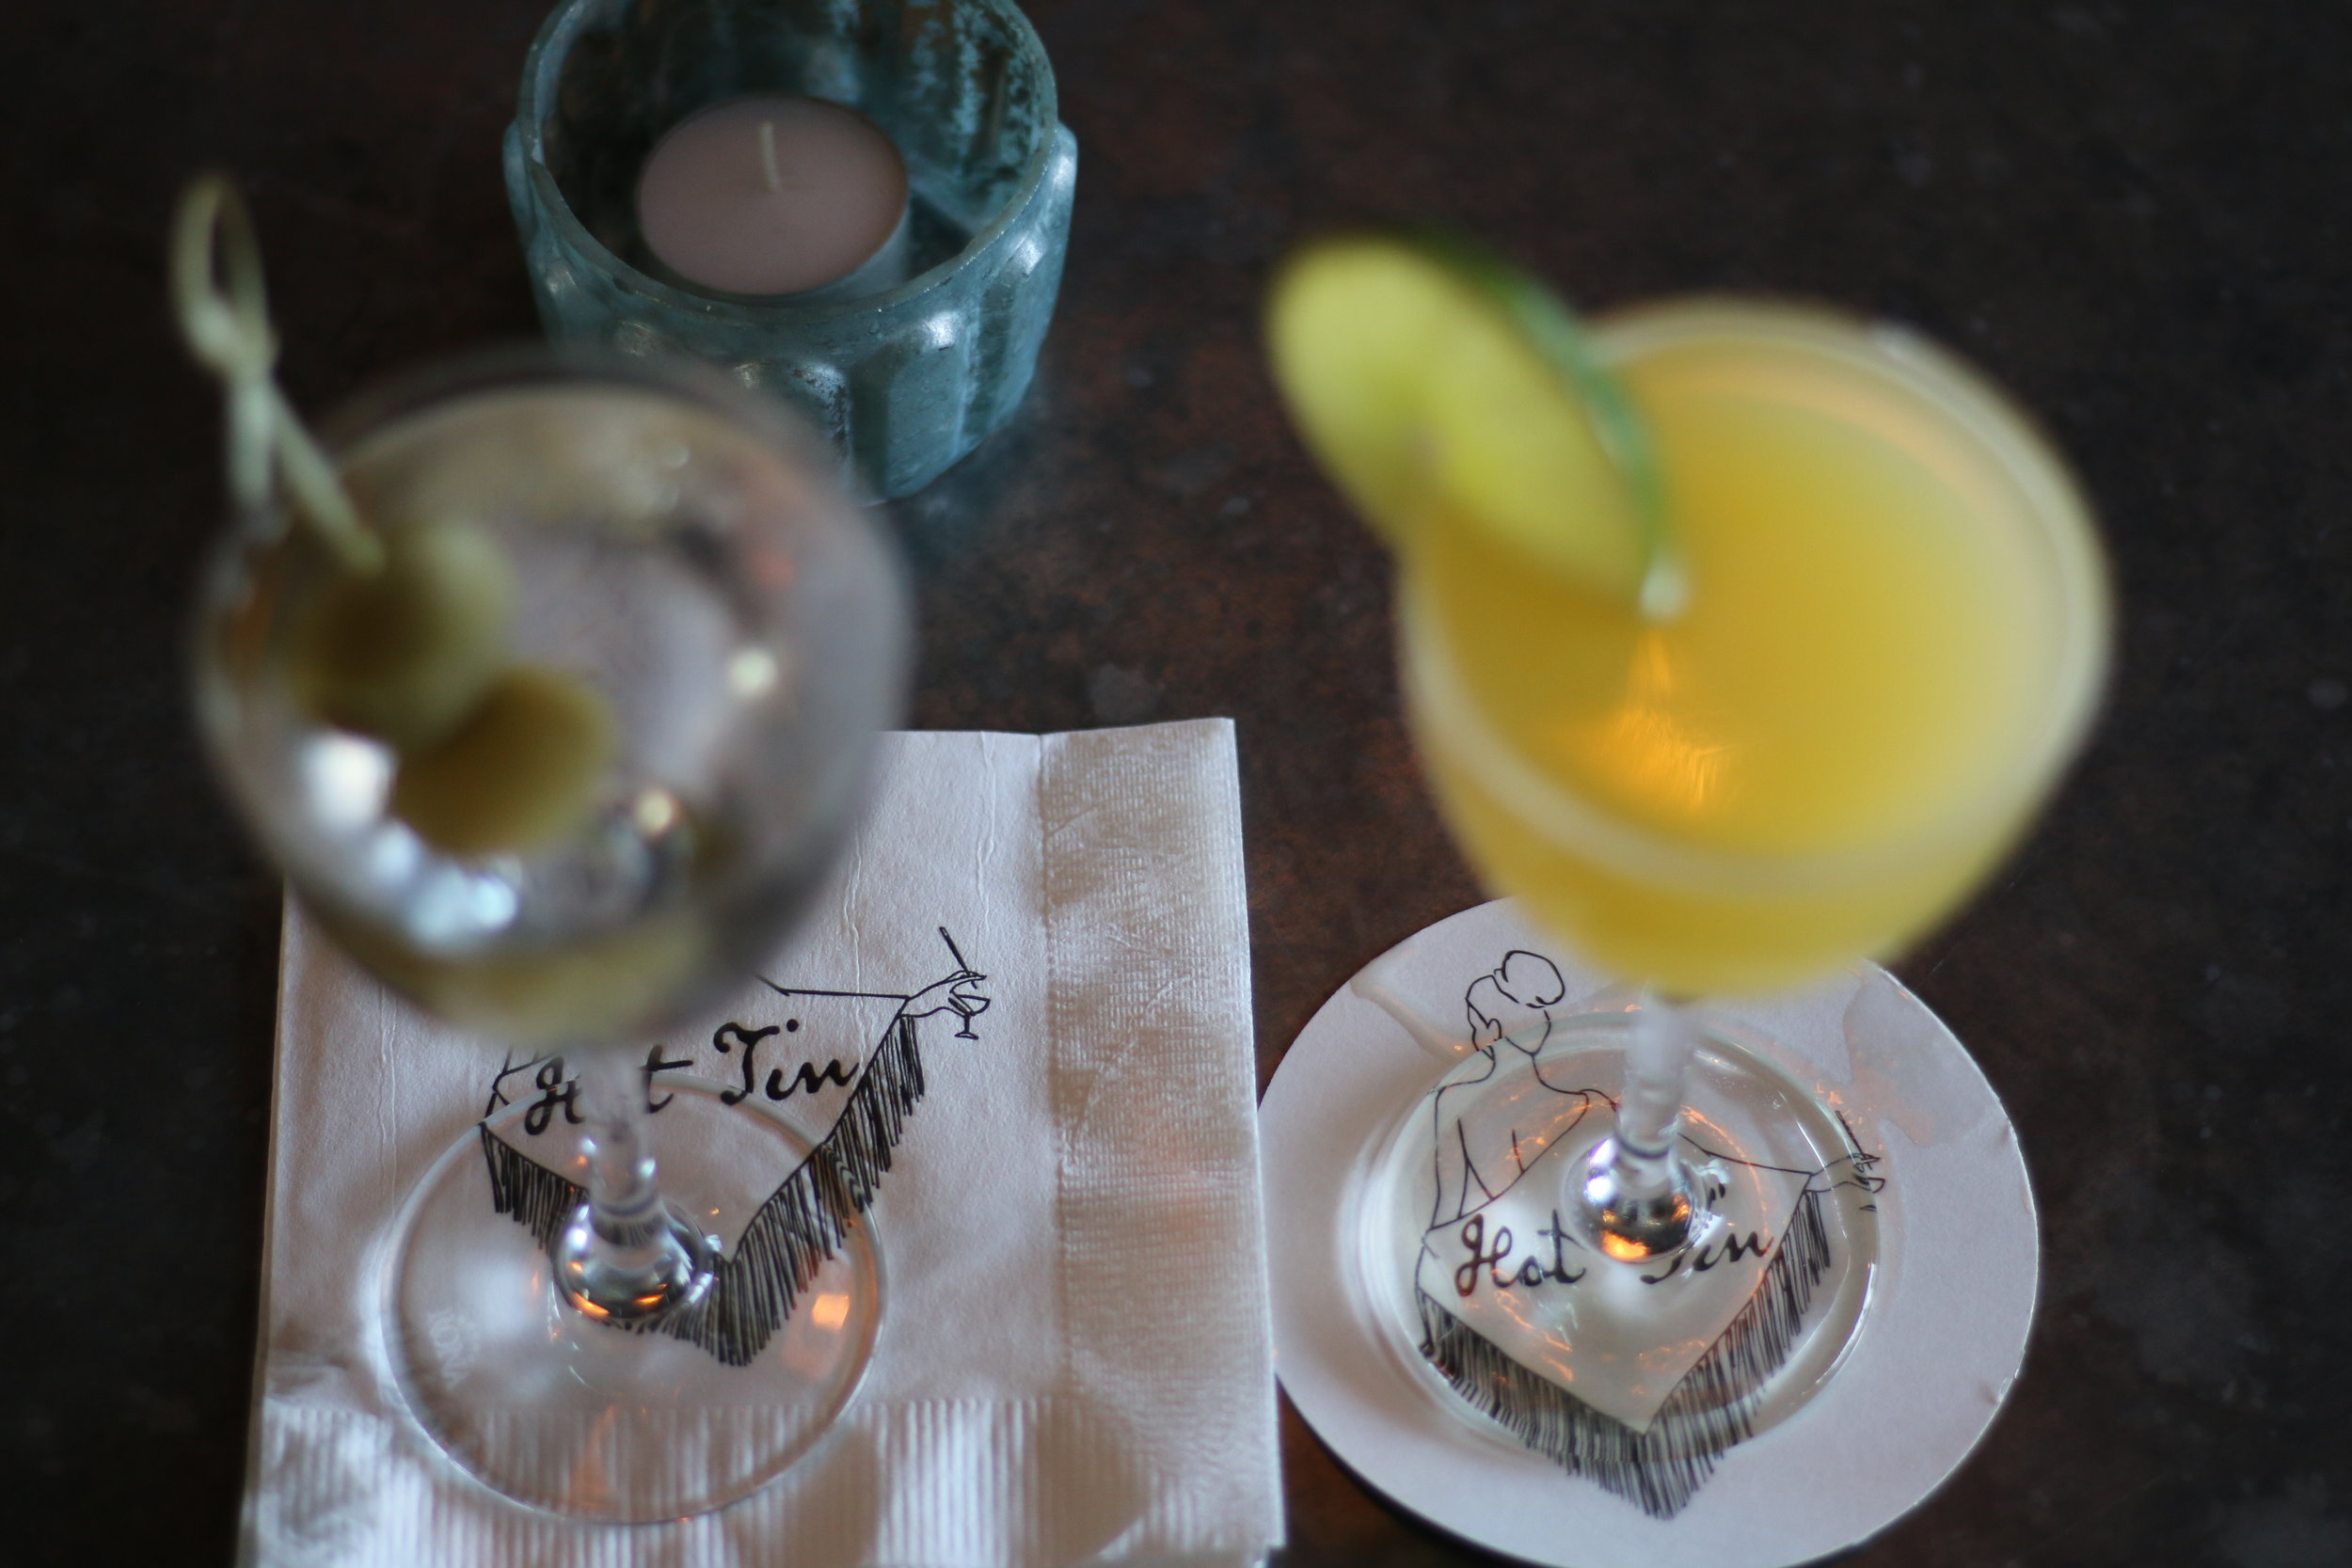 A Bombay Sapphire martini and the The Pineapple Upside-Down Daiquiri at Hot Tin